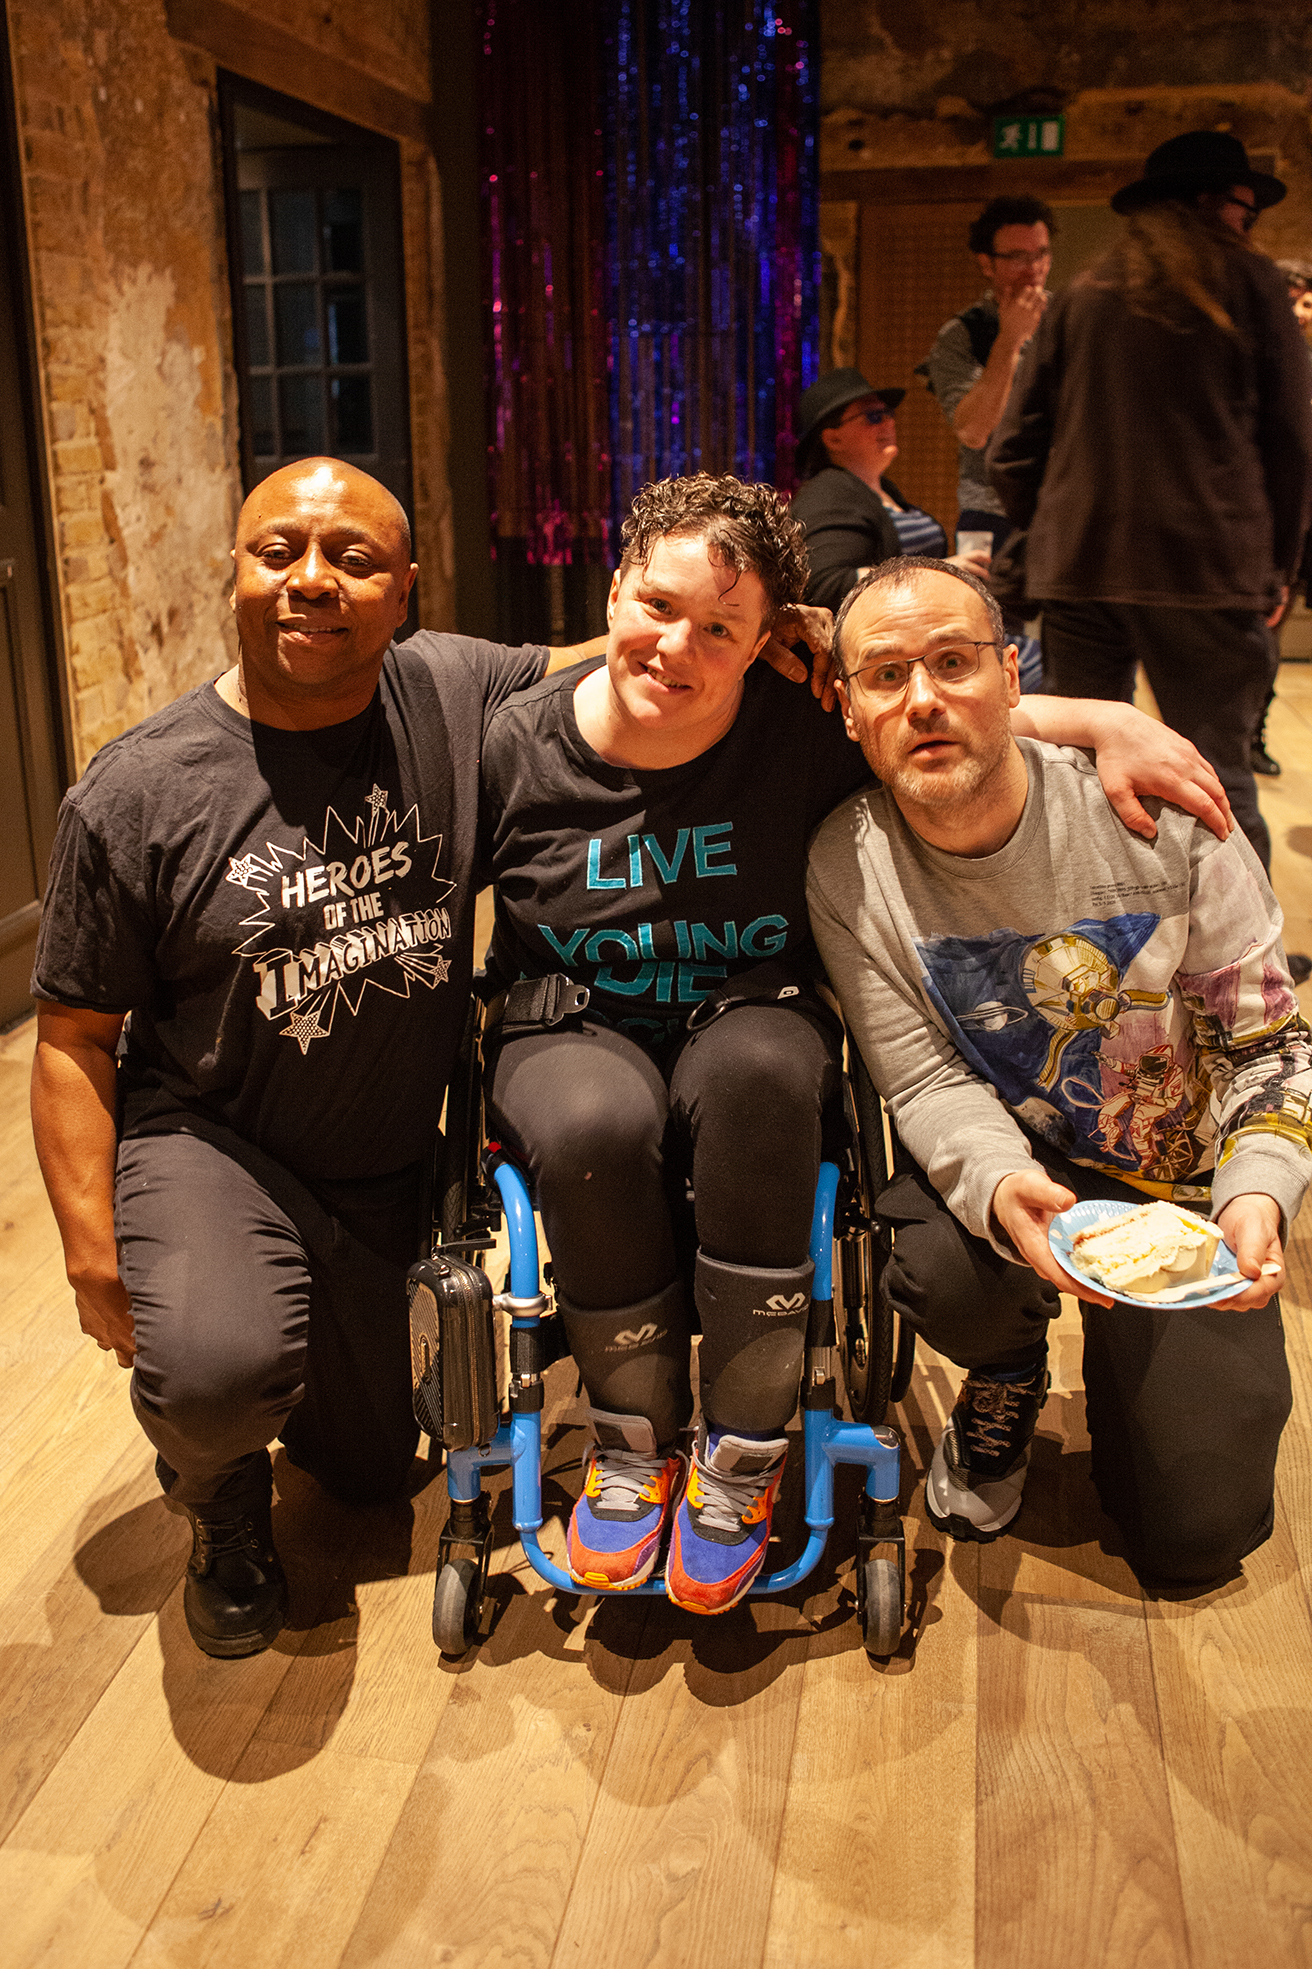 A photograph of David Ogwe, Touretteshero and Leftwing Idiot at Touretteshero's 10th Birthday party at Battersea Arts Centre. David is smiling on one knee to the left of Touretteshero and has his arm around her. Touretteshero is smiling and sat in between David and Leftwing Idiot with her arms around both of them. Leftwing Idiot is kneeling on one knee holding a piece of birthday cake.